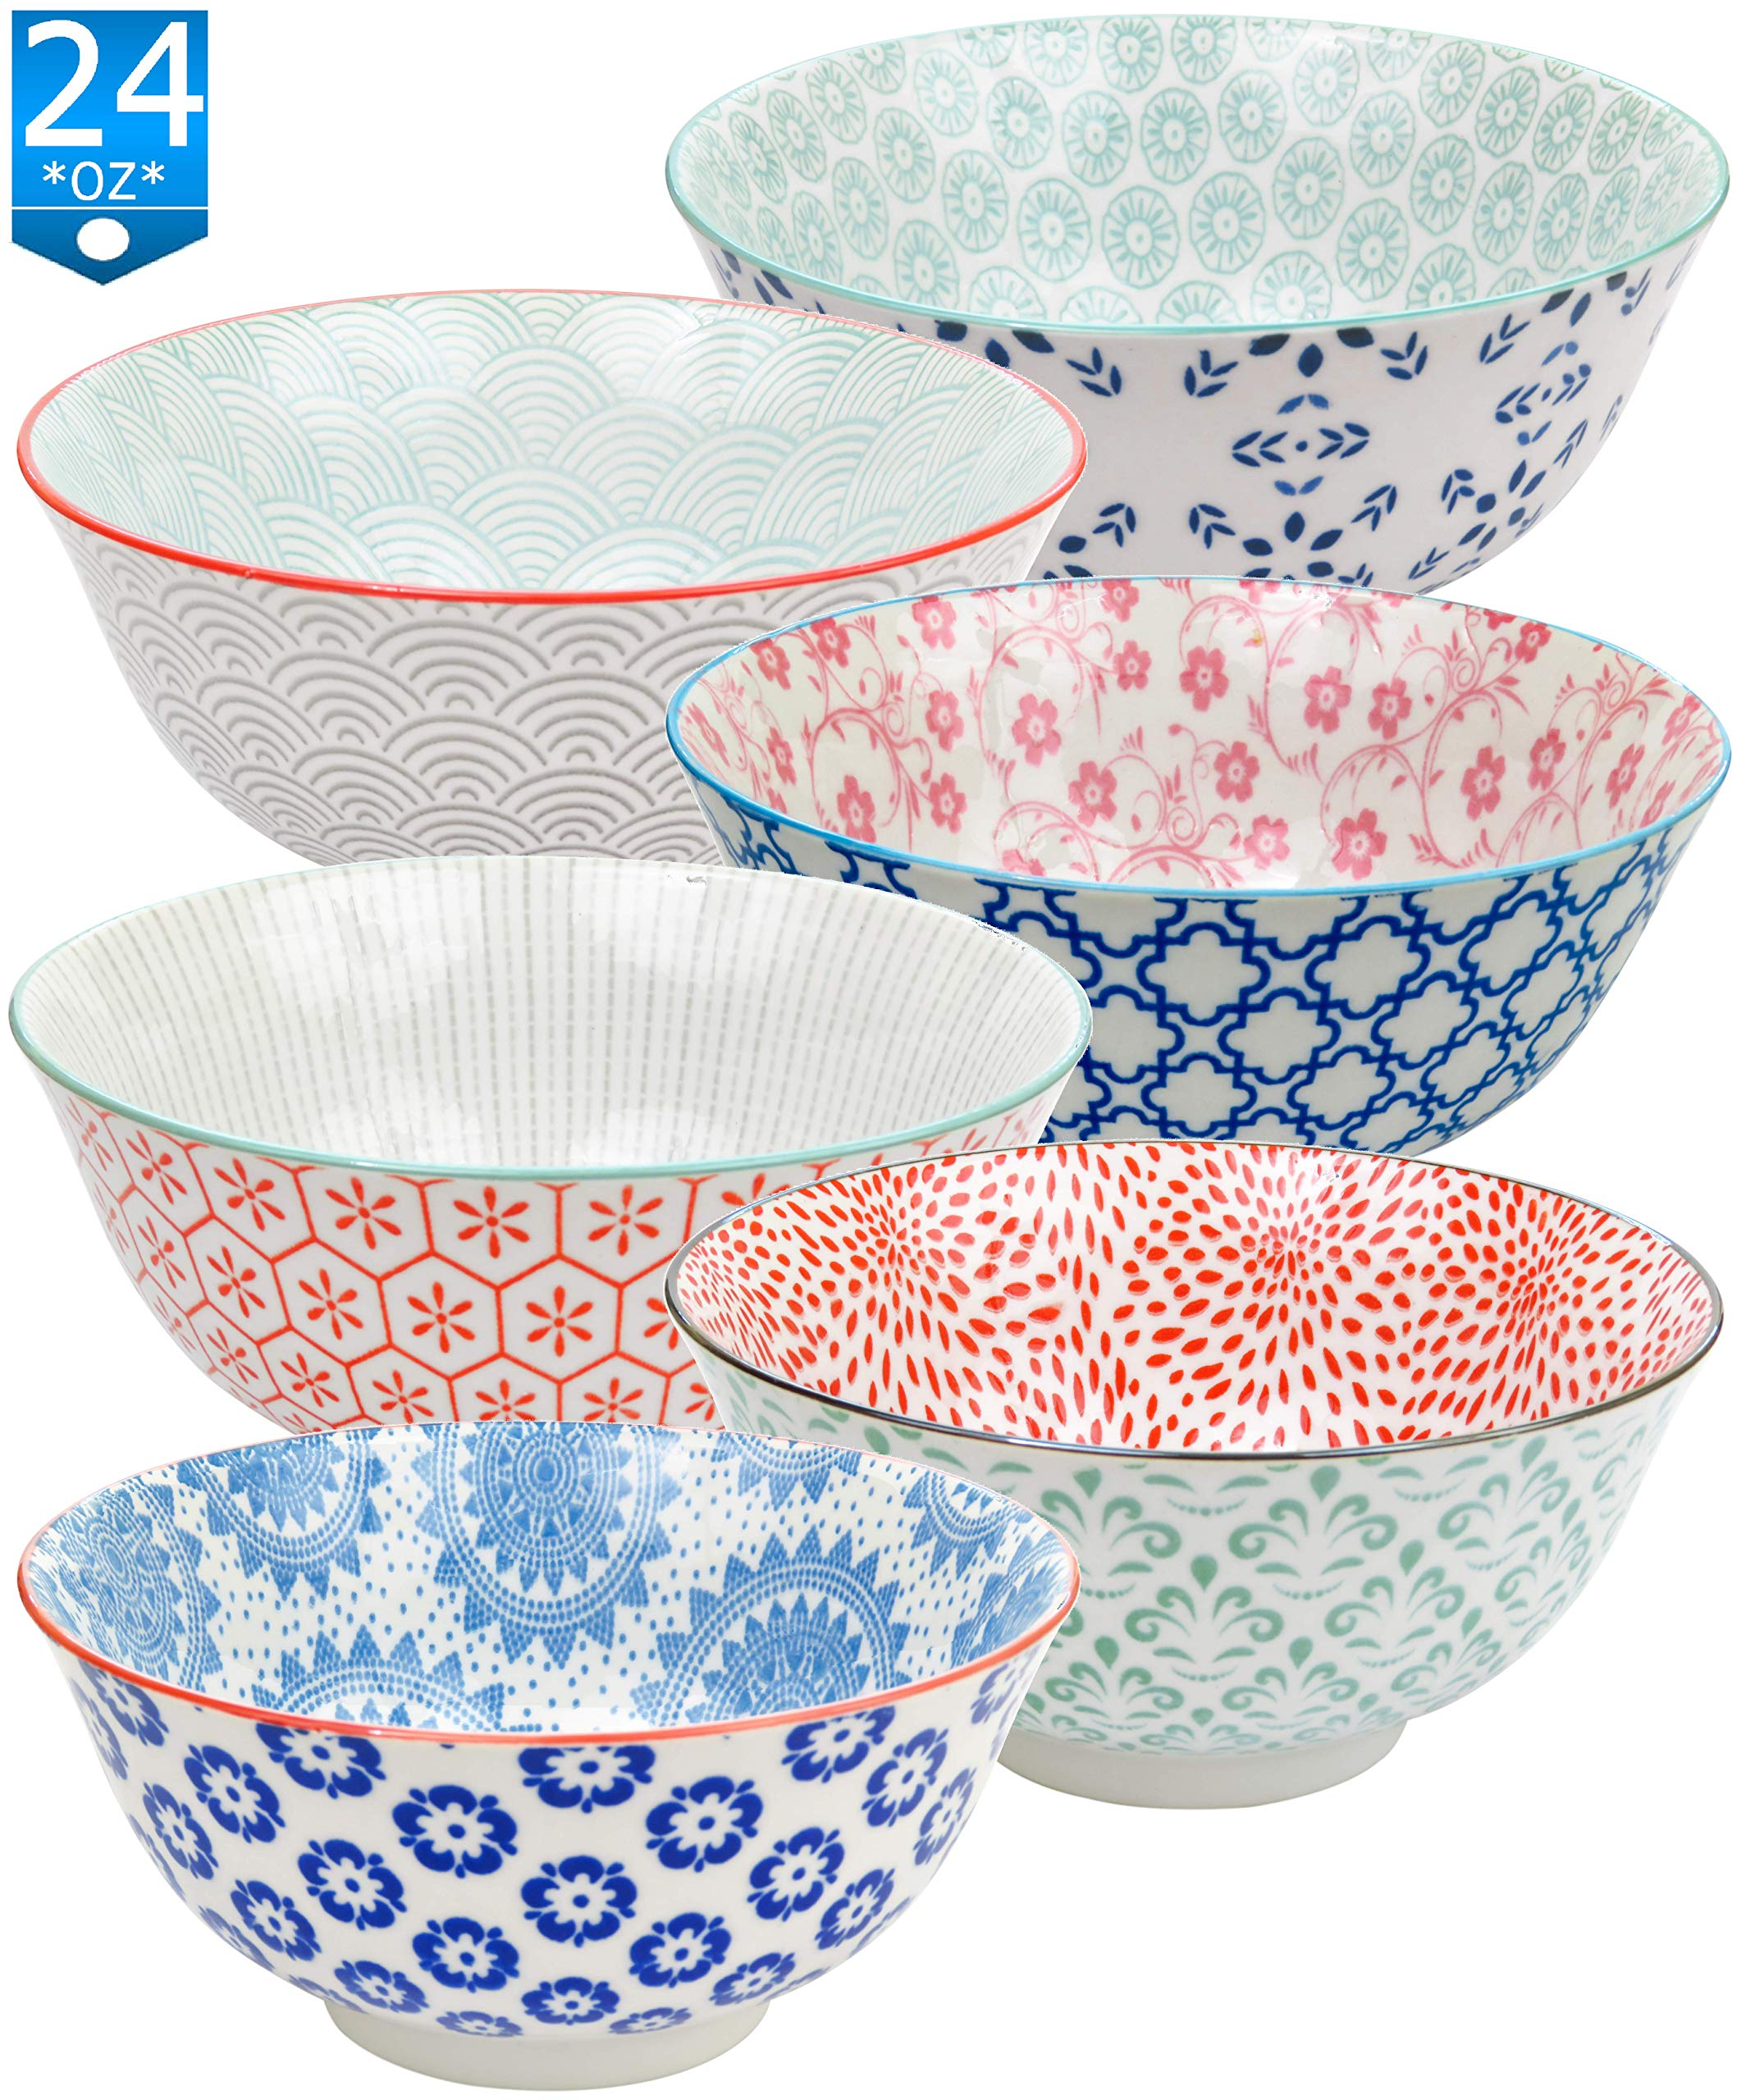 Gulee 24 Ounce Premium Porcelain Bowls Set - Great for Cereal, Soup, Salad, Rice or Pasta - 6 Vibrant Designs - Large Capacity - Heat and Cold Resistant Ceramic - Dishwasher and Microwave Safe